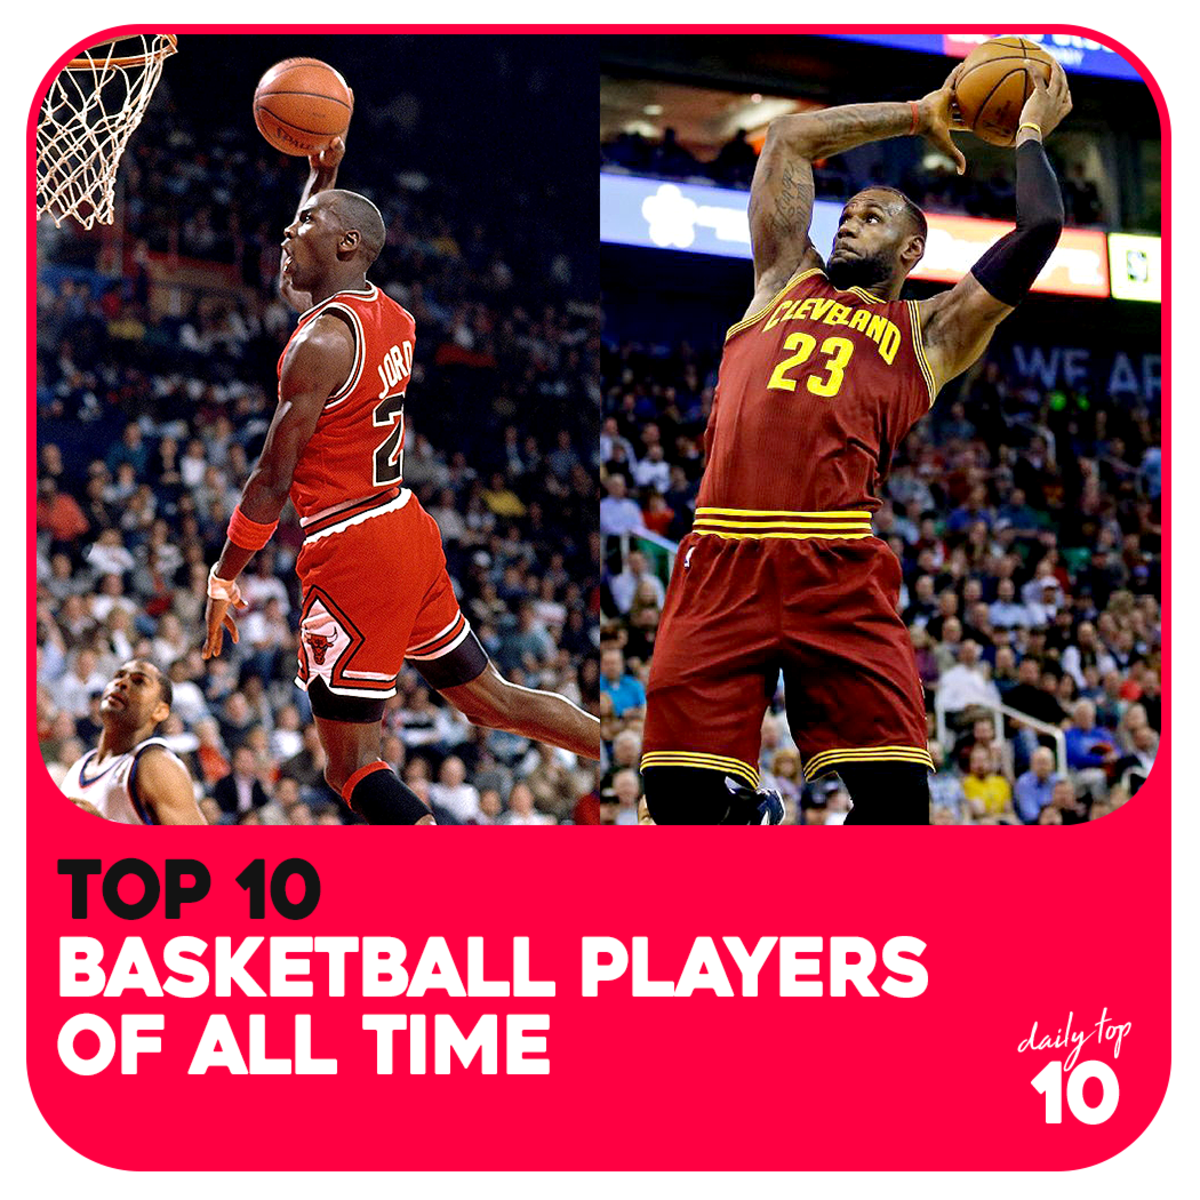 Top 10 Basketball Players of All Time (Plus Honorable Mentions)